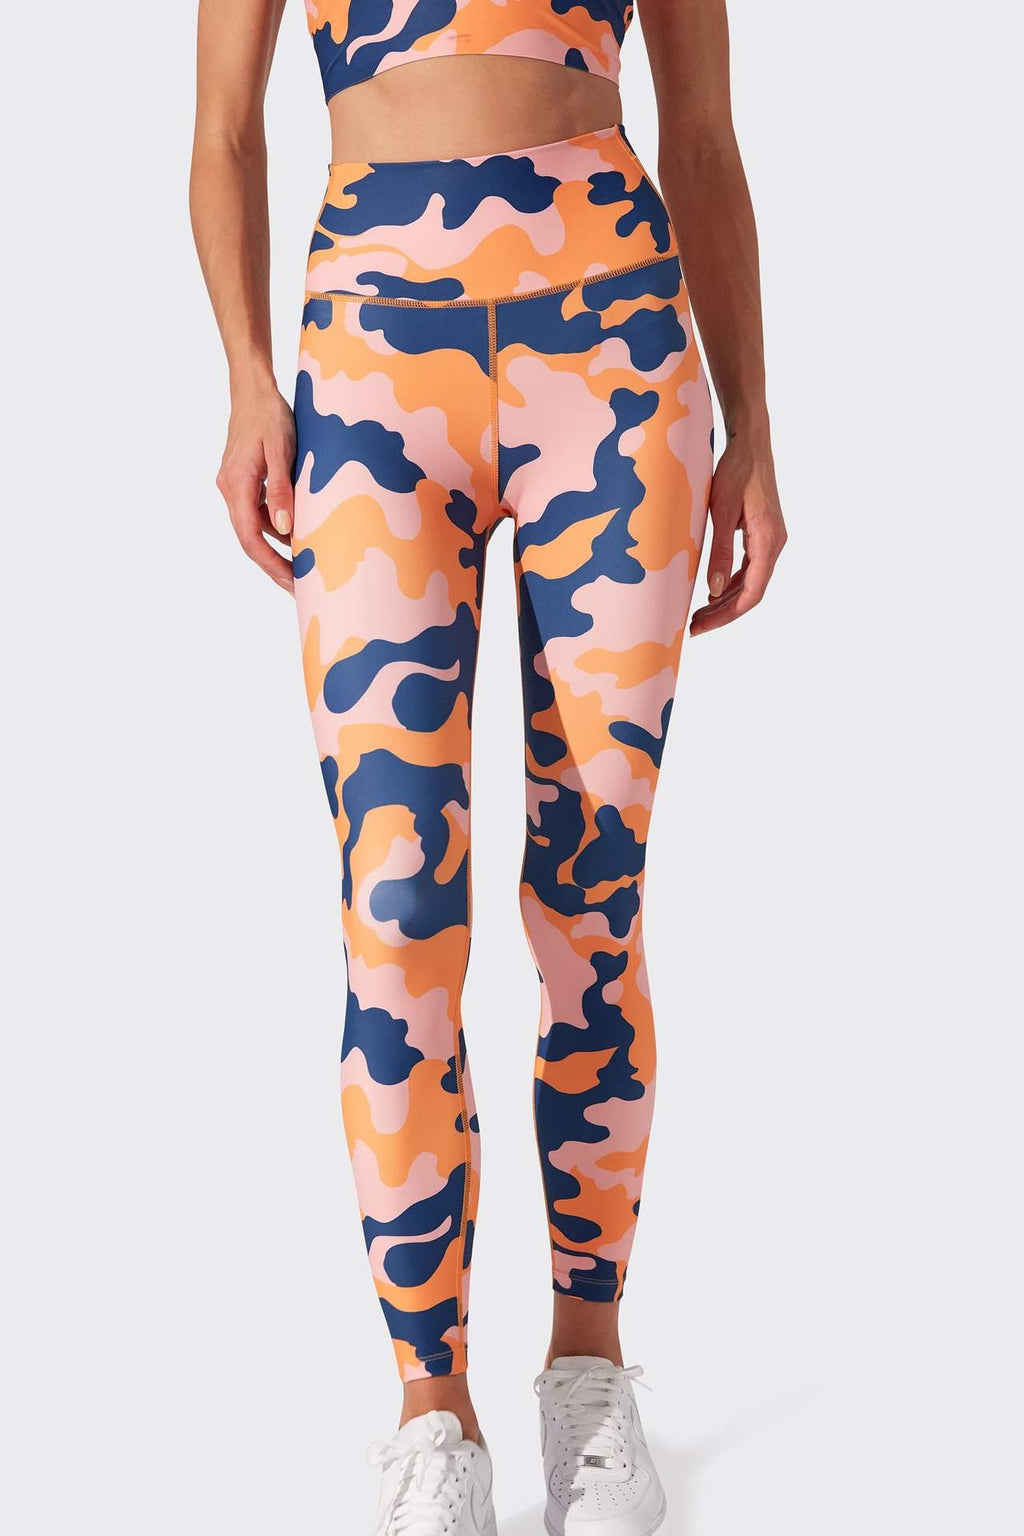 Ava High Waist 7/8 Legging - Pink Camo